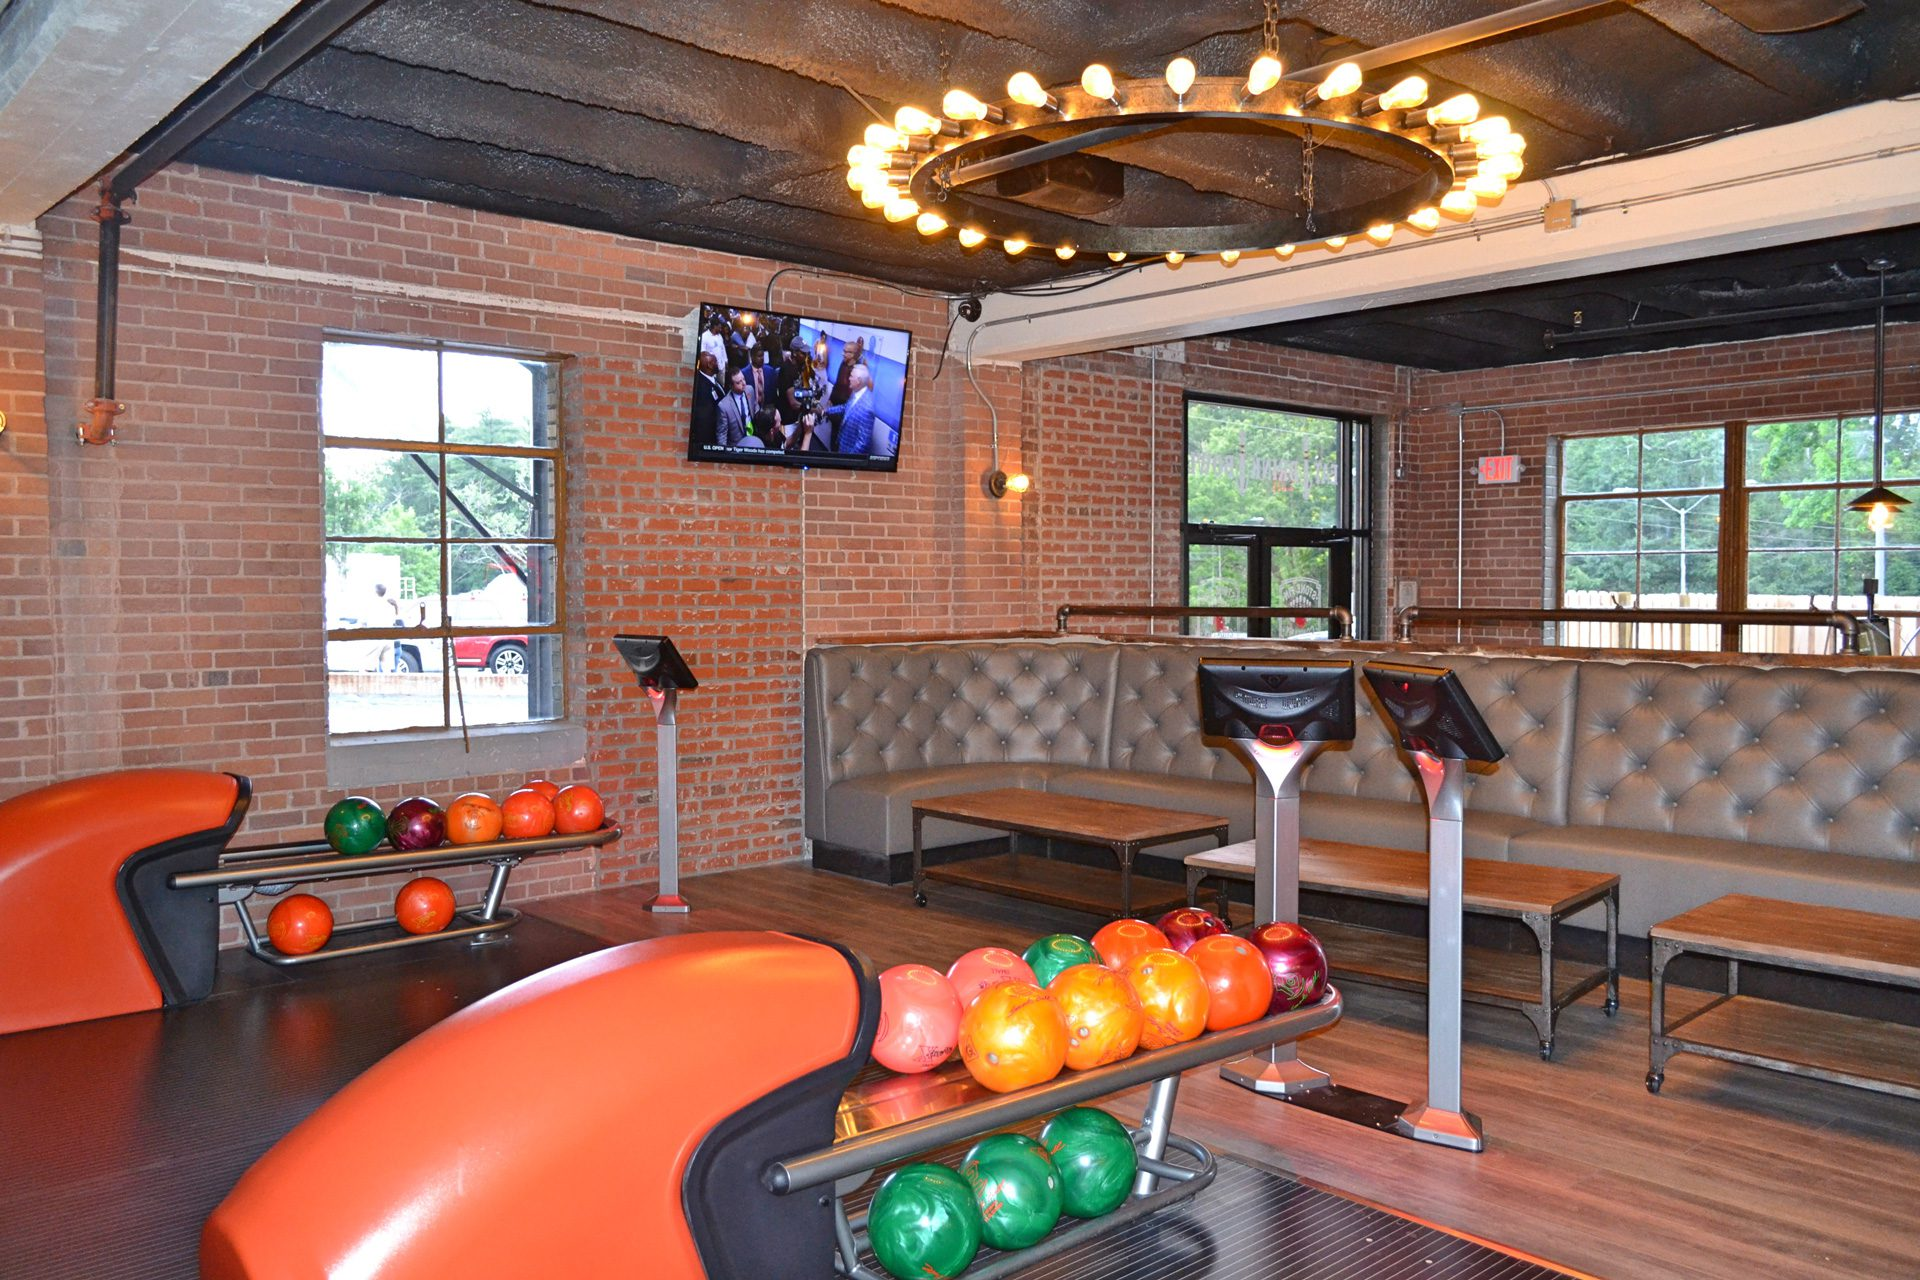 Welcome To Stone Pin Company Stone Pin Bowling Alley